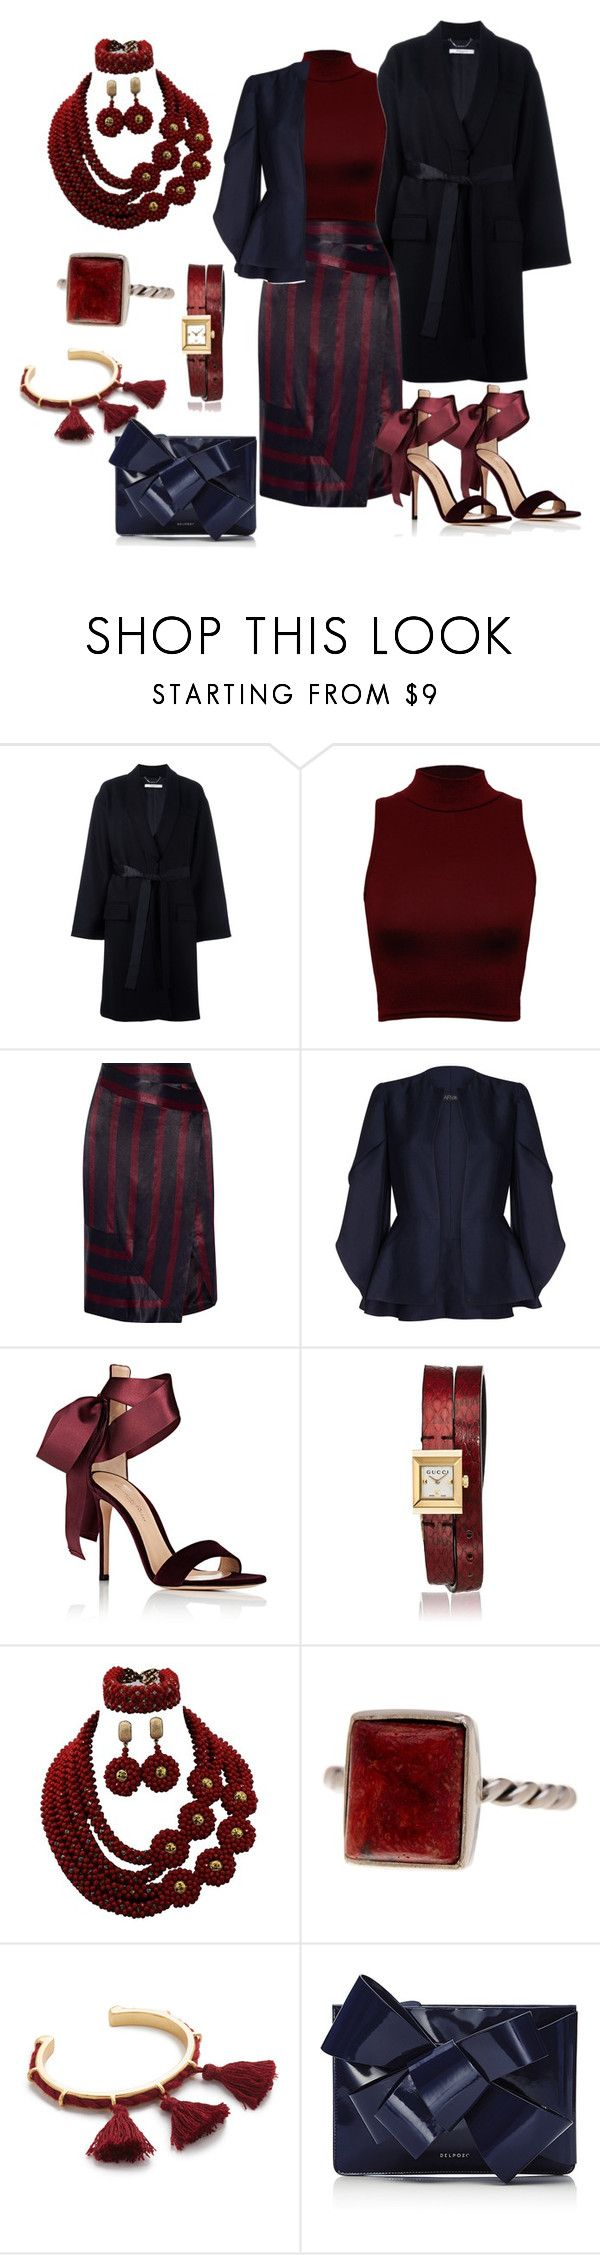 """Untitled #2505"" by deirdre35 on Polyvore featuring Givenchy, WearAll, By Malene Birger, Safiyaa, Gianvito Rossi, Gucci, Exex Design, Madewell and Delpozo"